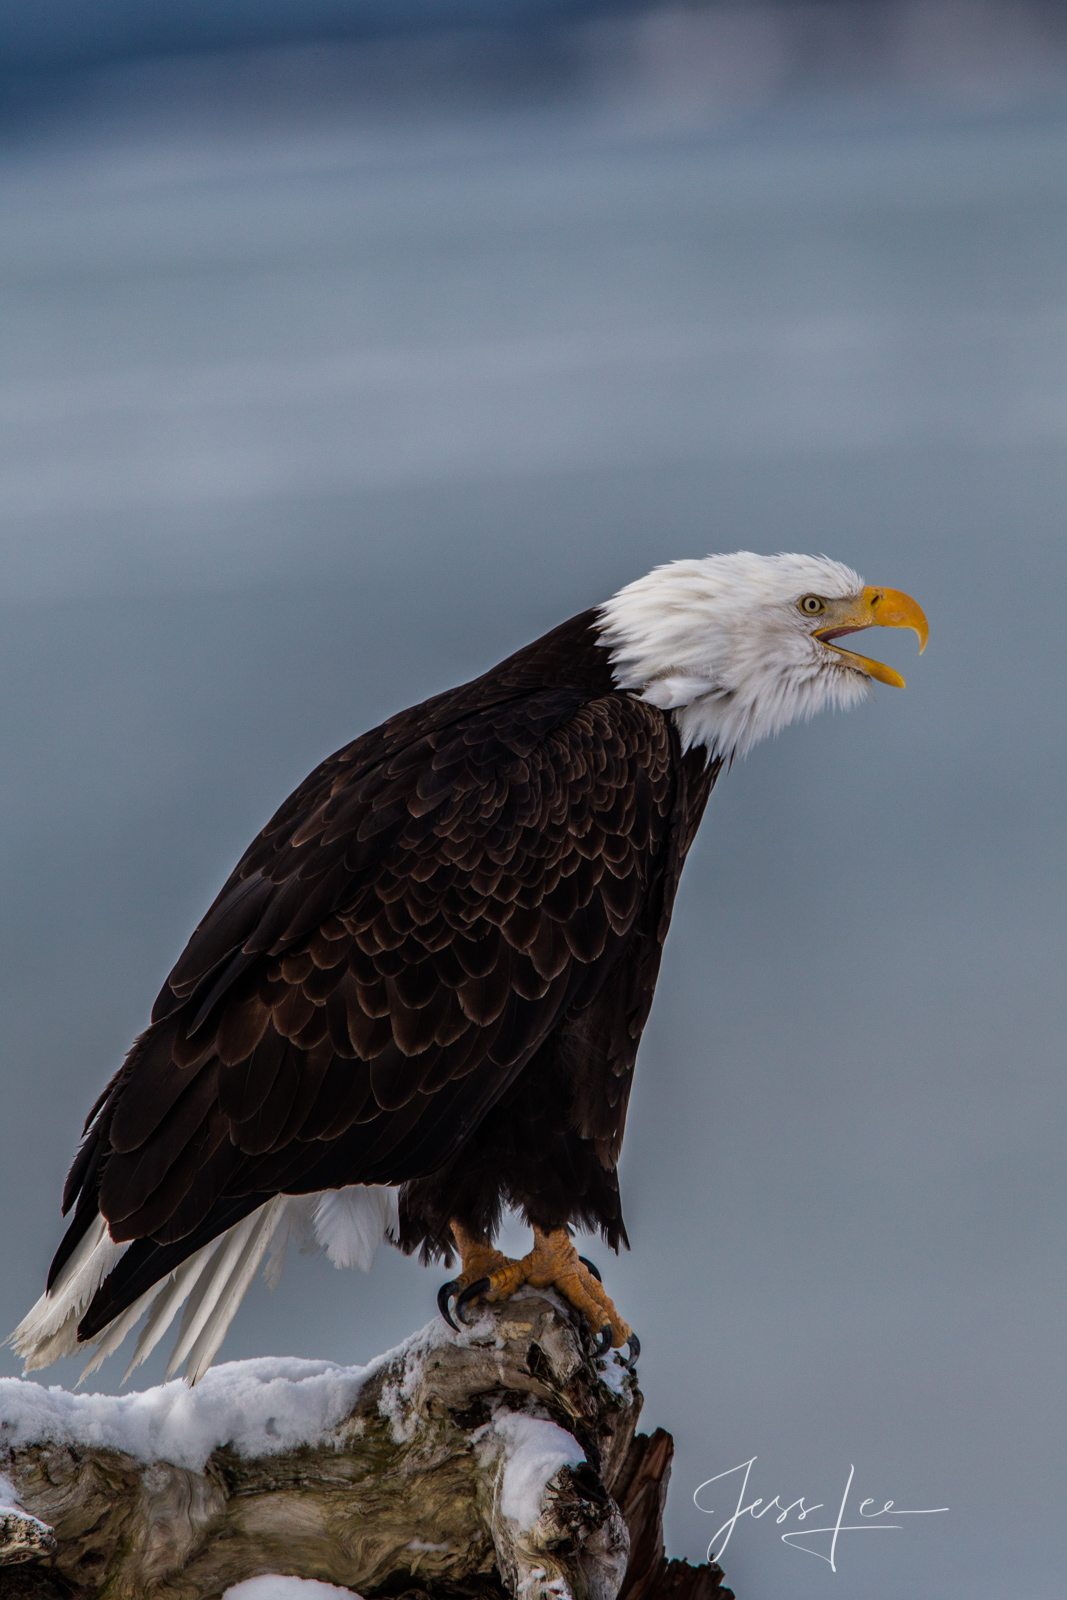 Bring home the power and beauty of the amazing fine art American Bald Eagle photography by Jess Lee from his Wildlife Photography...